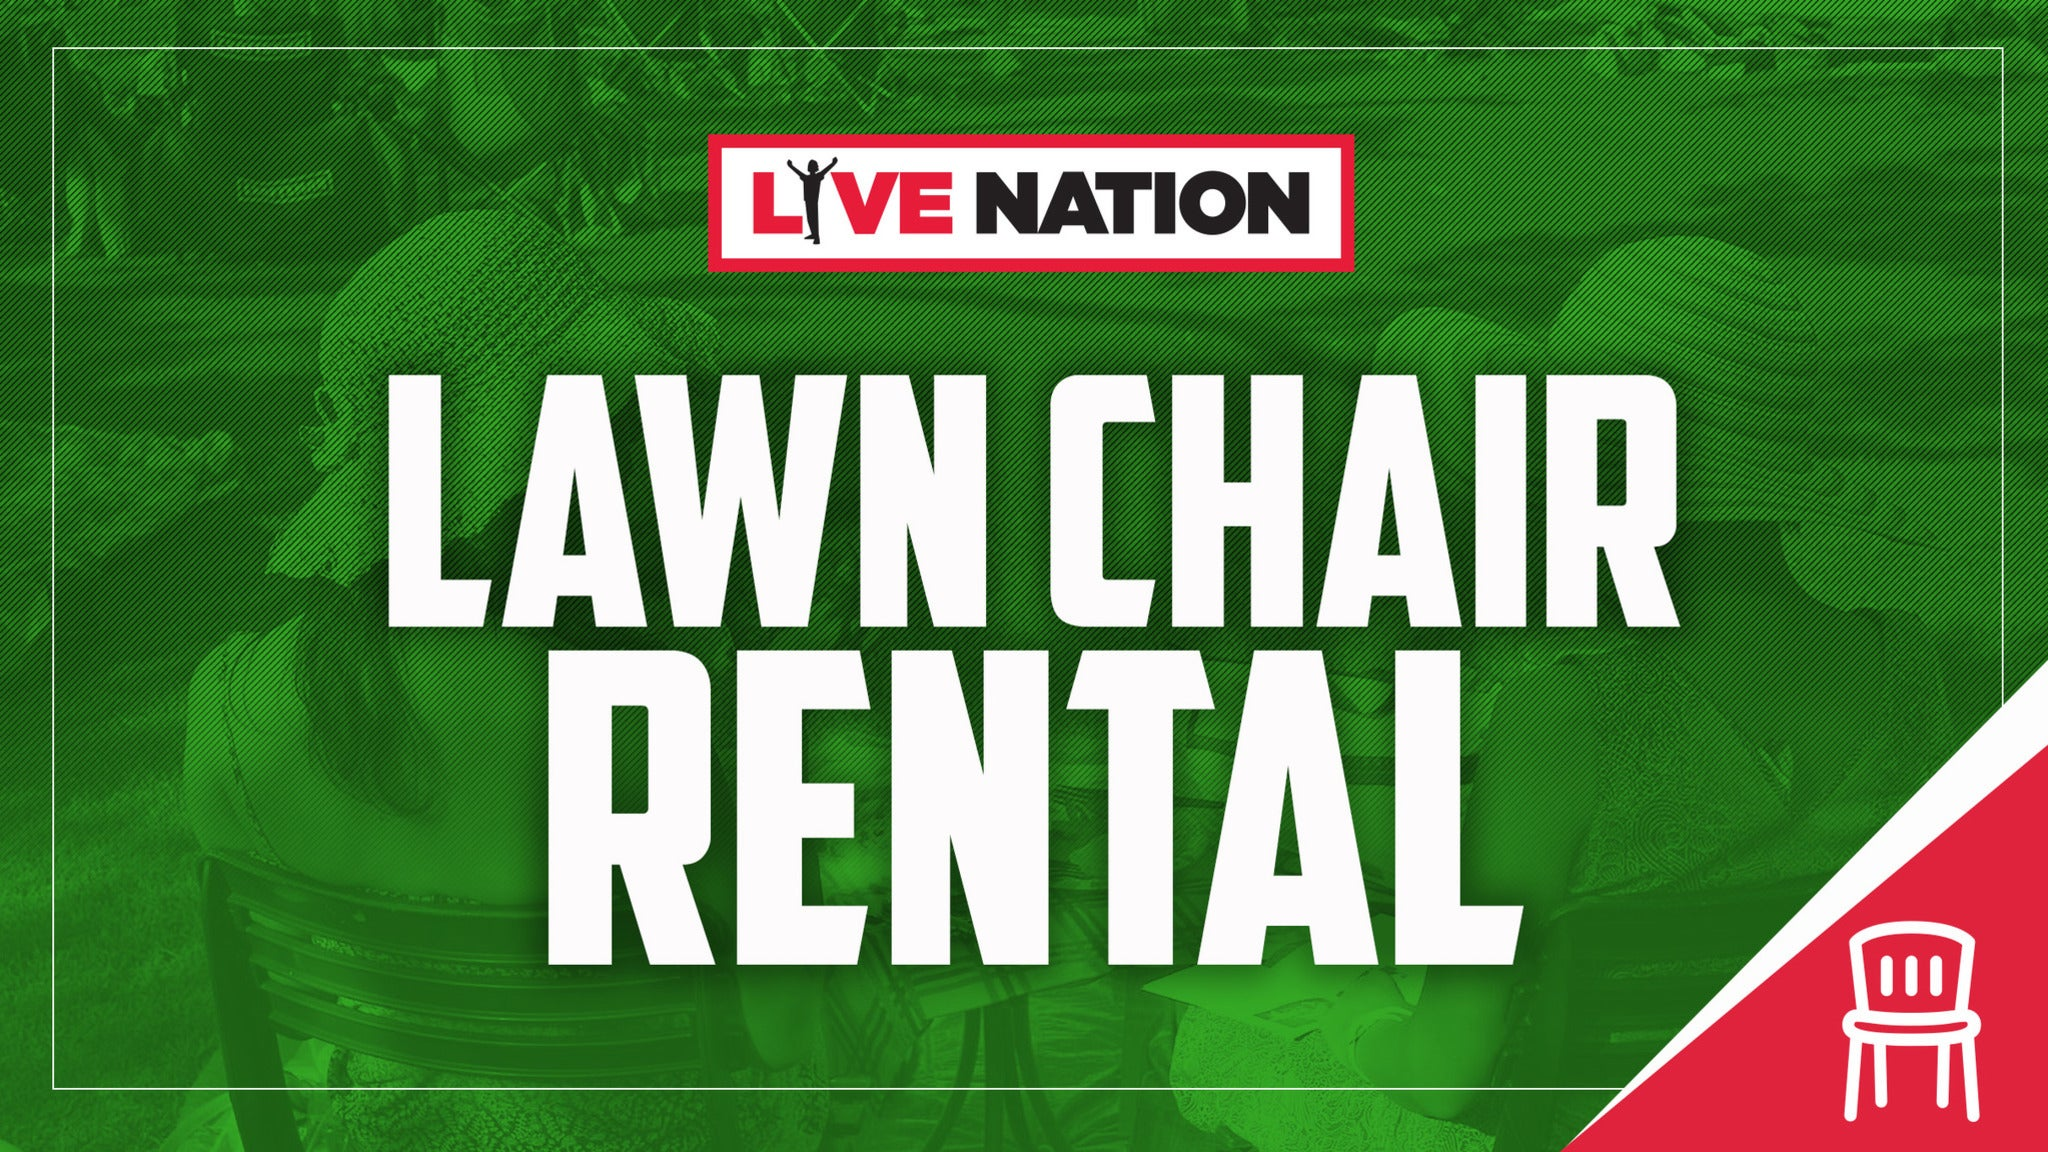 Lawn Chair Rental: Lindsey Stirling - This Is NOT A Concert Ticket